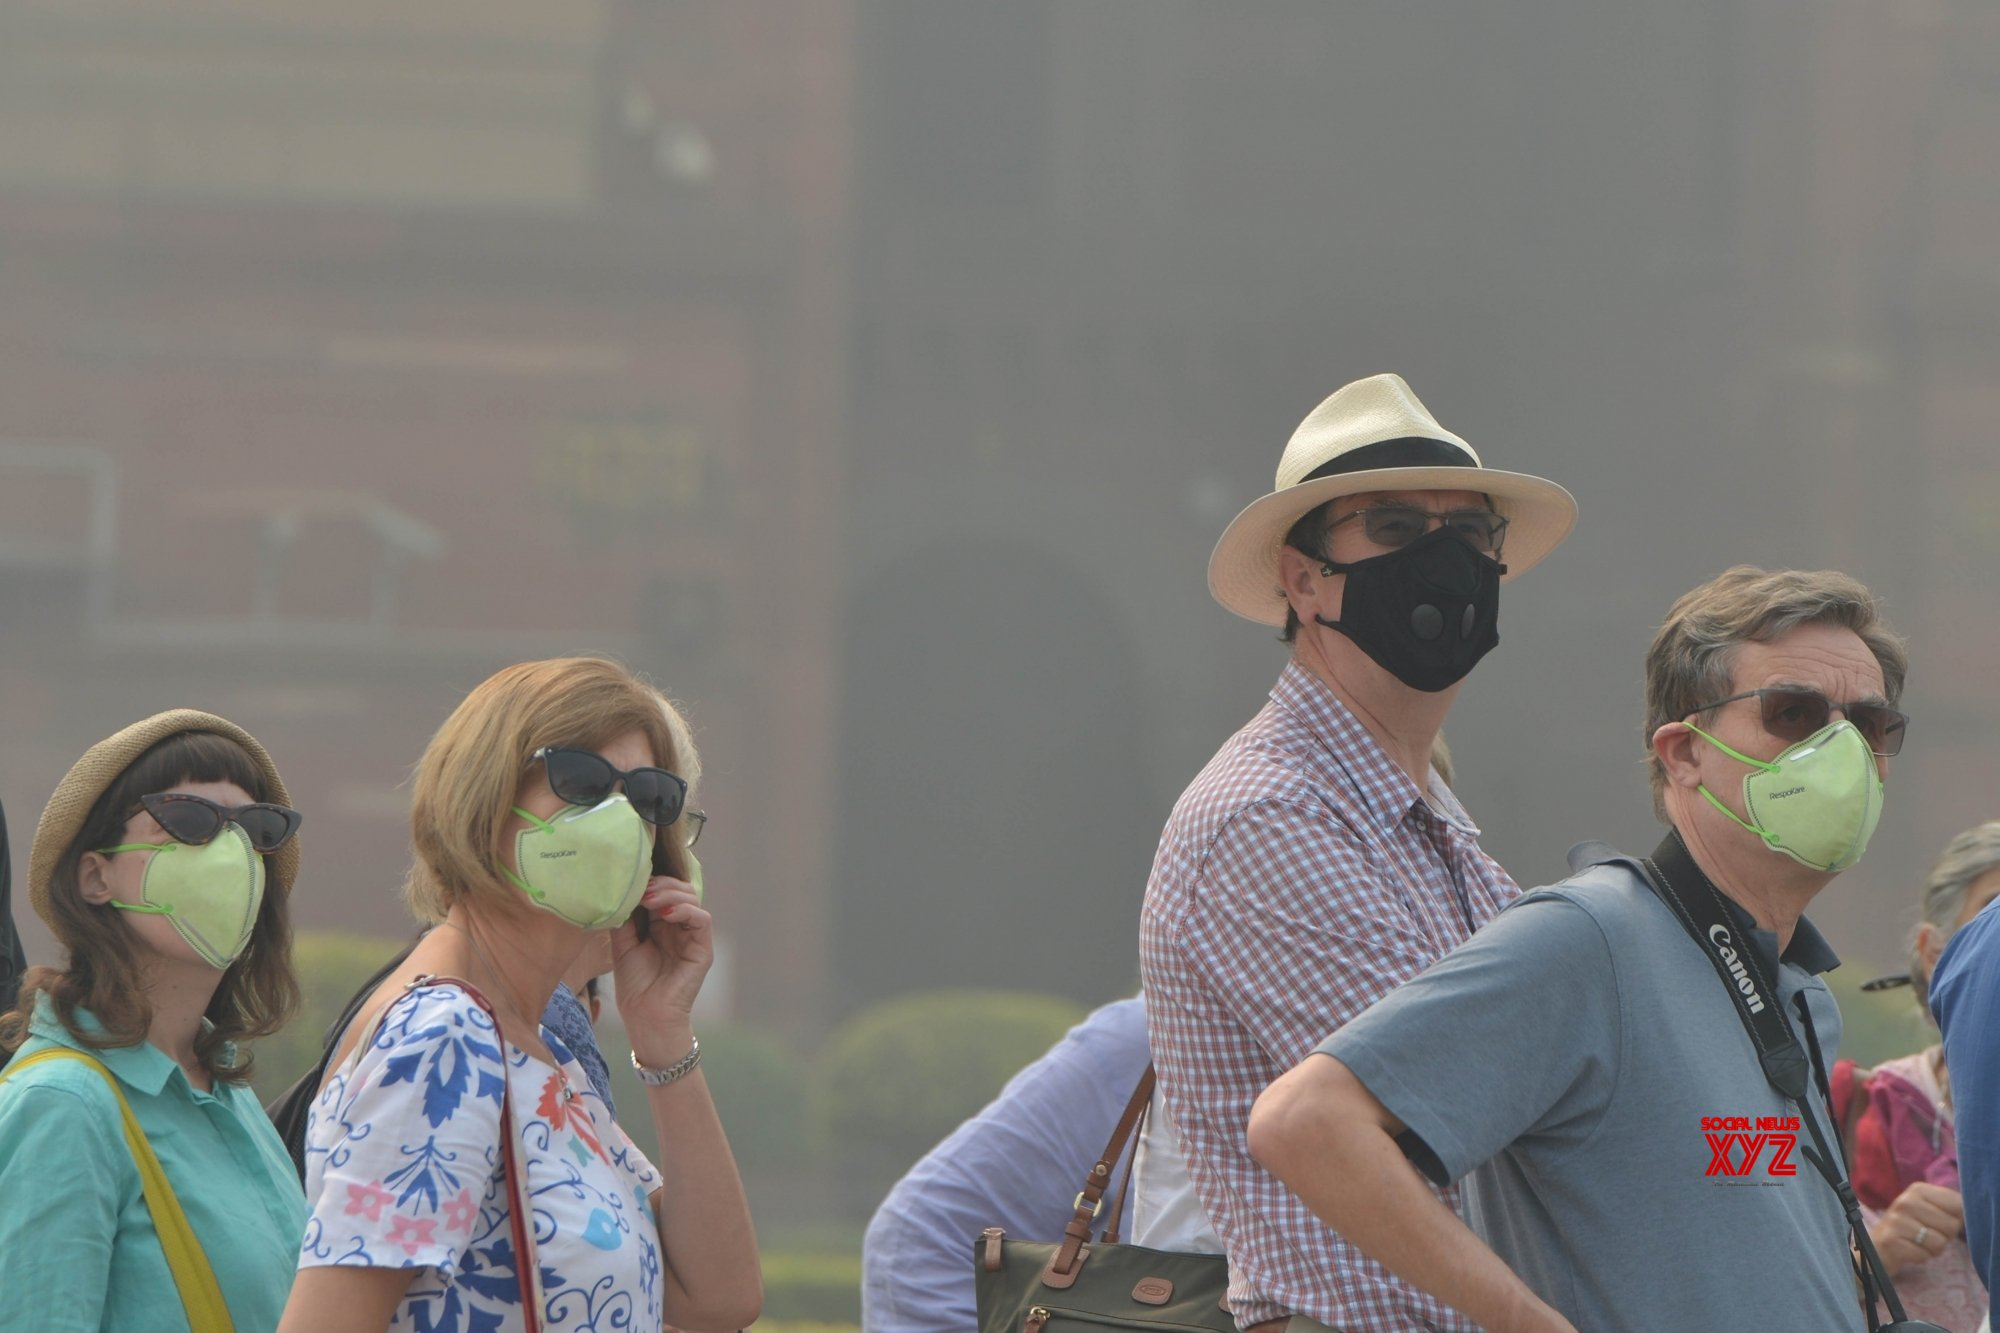 Now you can experience Delhi's toxic air in Madrid too